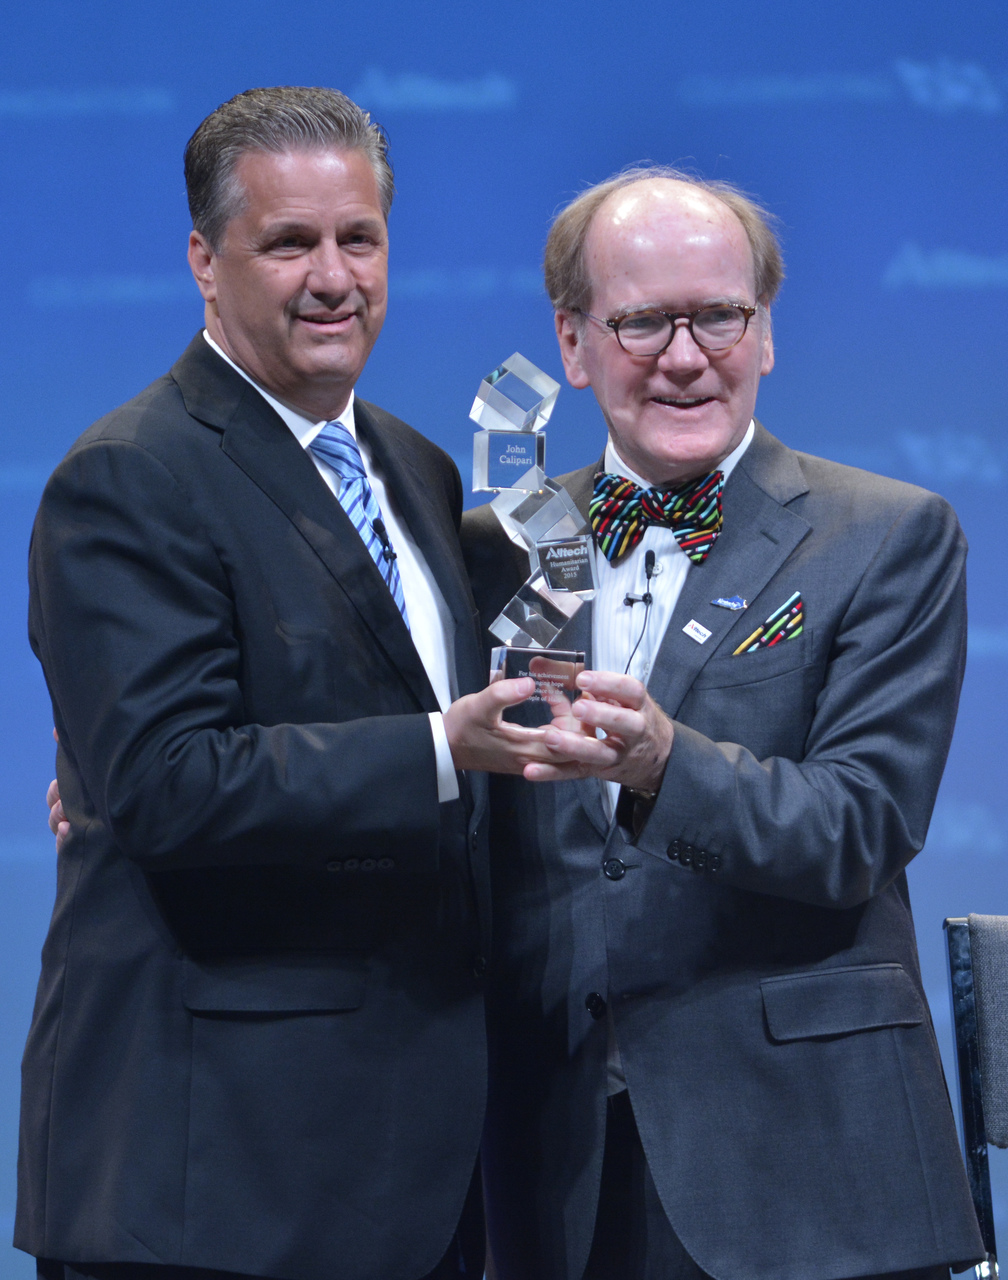 John Calipari accepts the 2015 Humanitarian Award from Dr. Pearse Lyons, president and founder of Alltech. Calipari was honored at the Alltech REBELation international conference for his commitment to philanthropic initiatives (Alltech Photo)